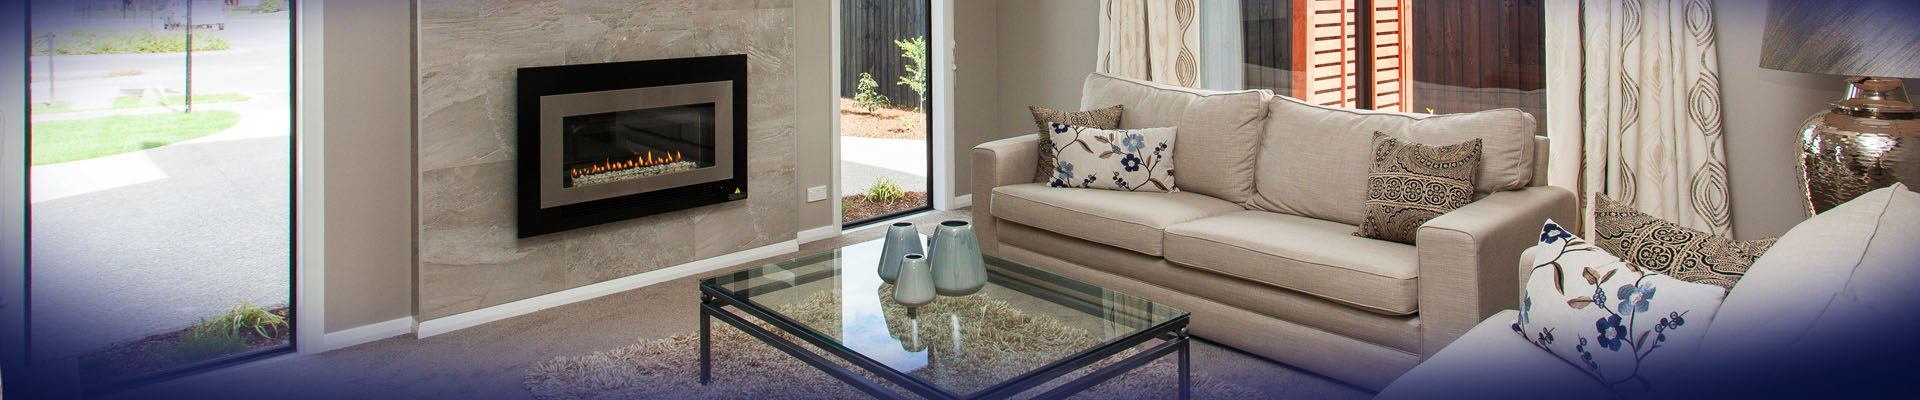 About Us Hallmark Homes Canterburys design and build specialist - Gallery